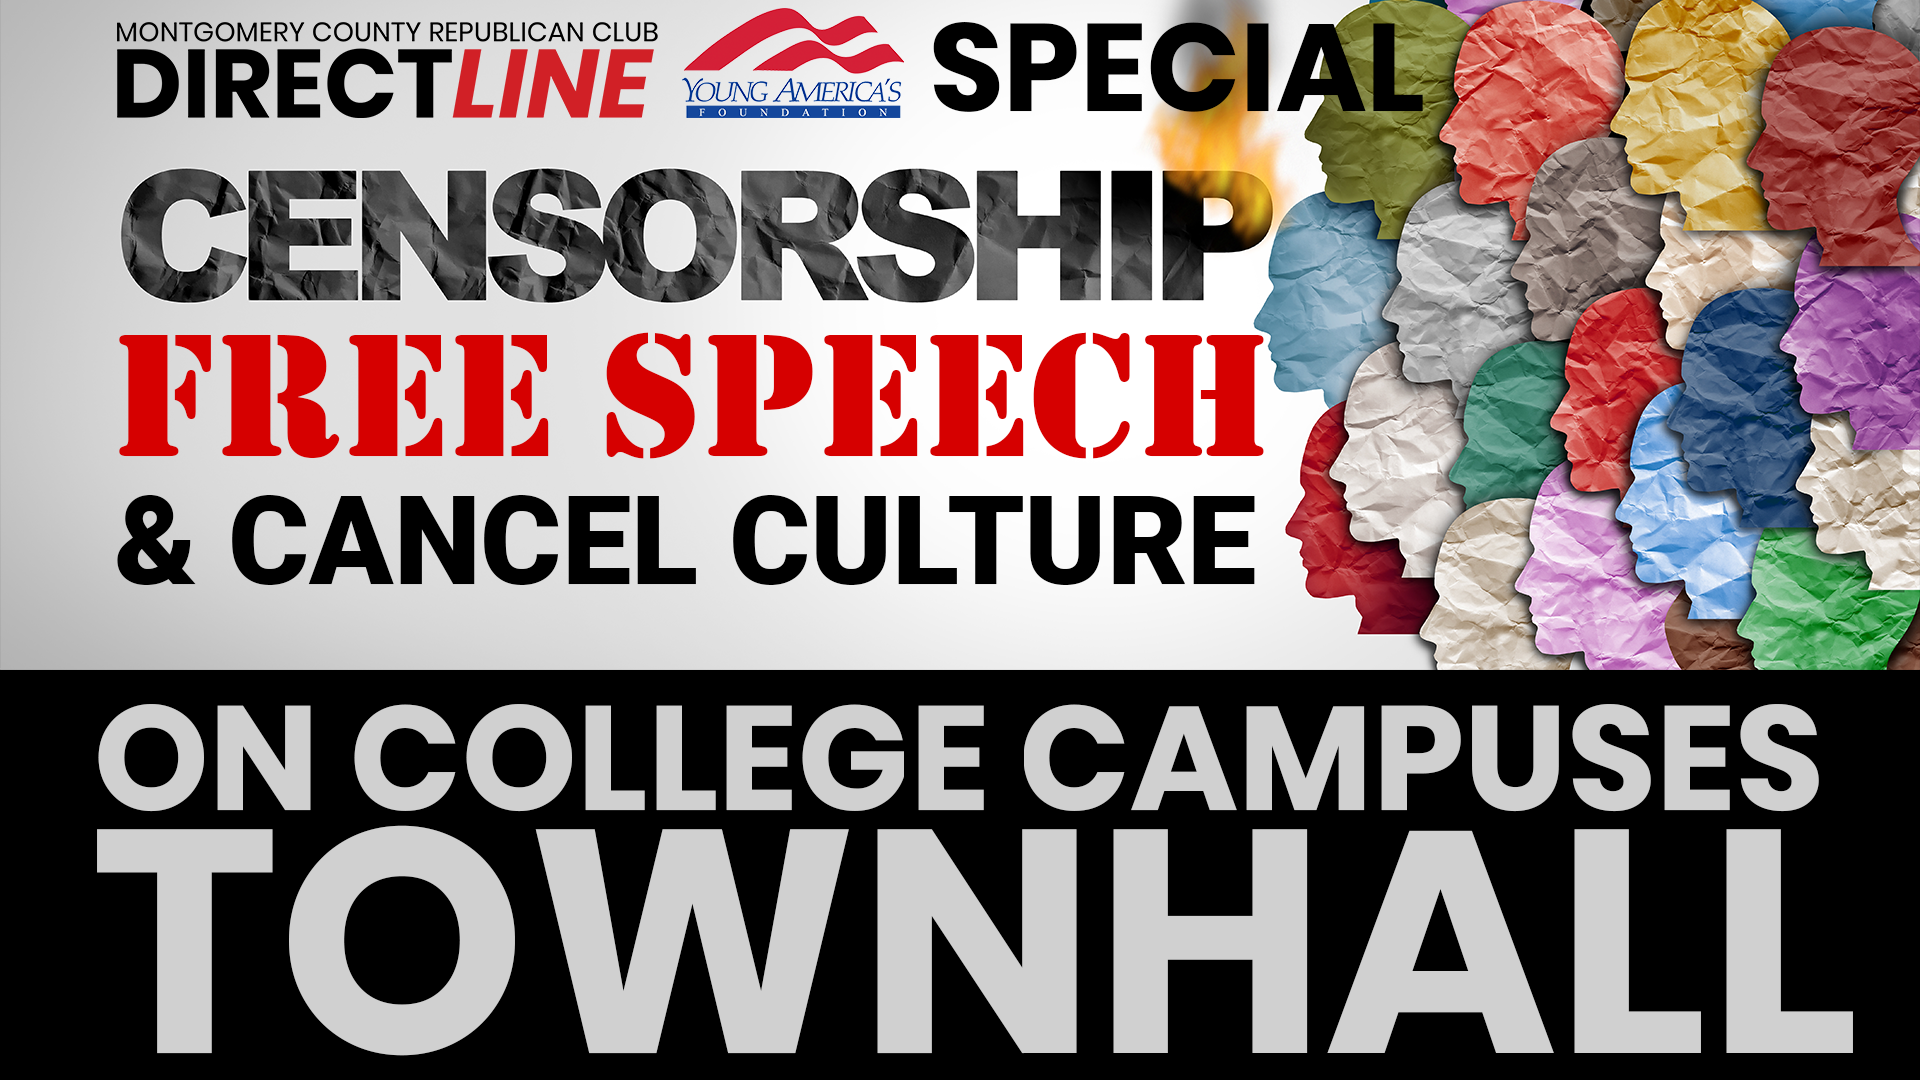 Direct Line Special Free Speech and Cancel Culture townhall